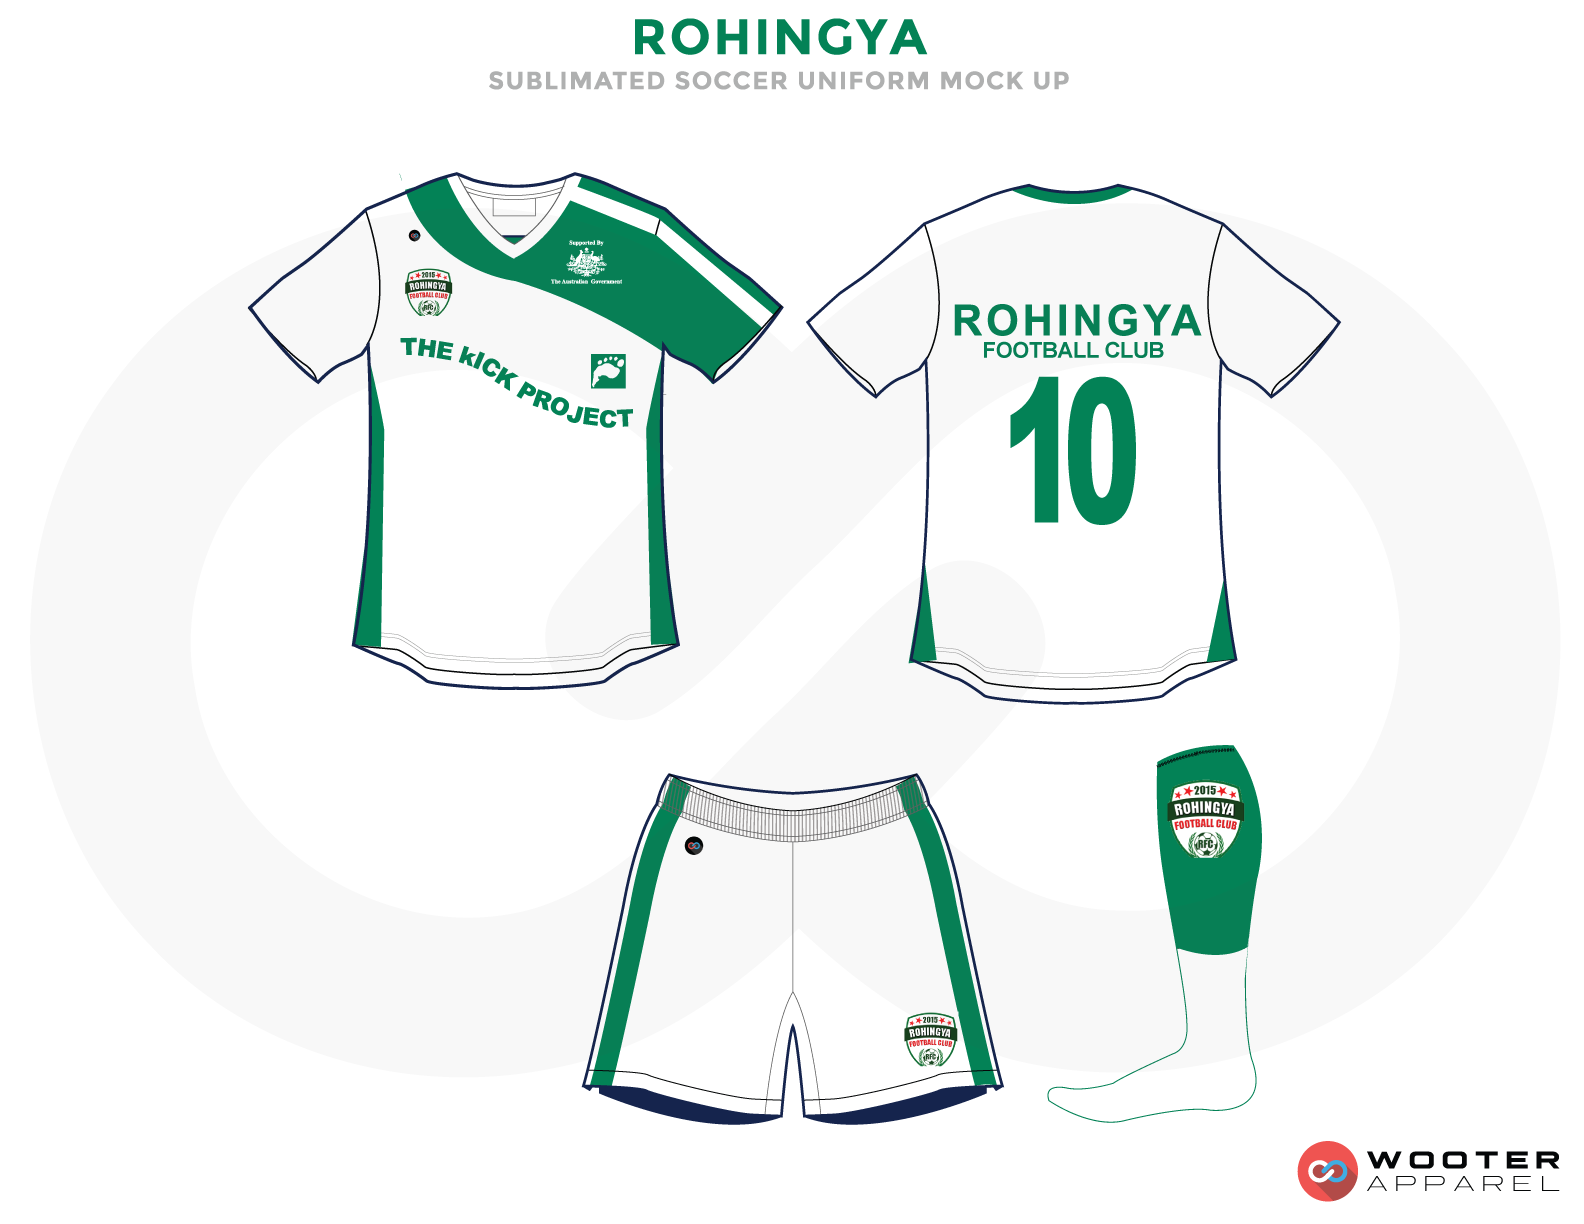 Rohingya Green and White Soccer Uniform, Jersey, Shorts, and Socks